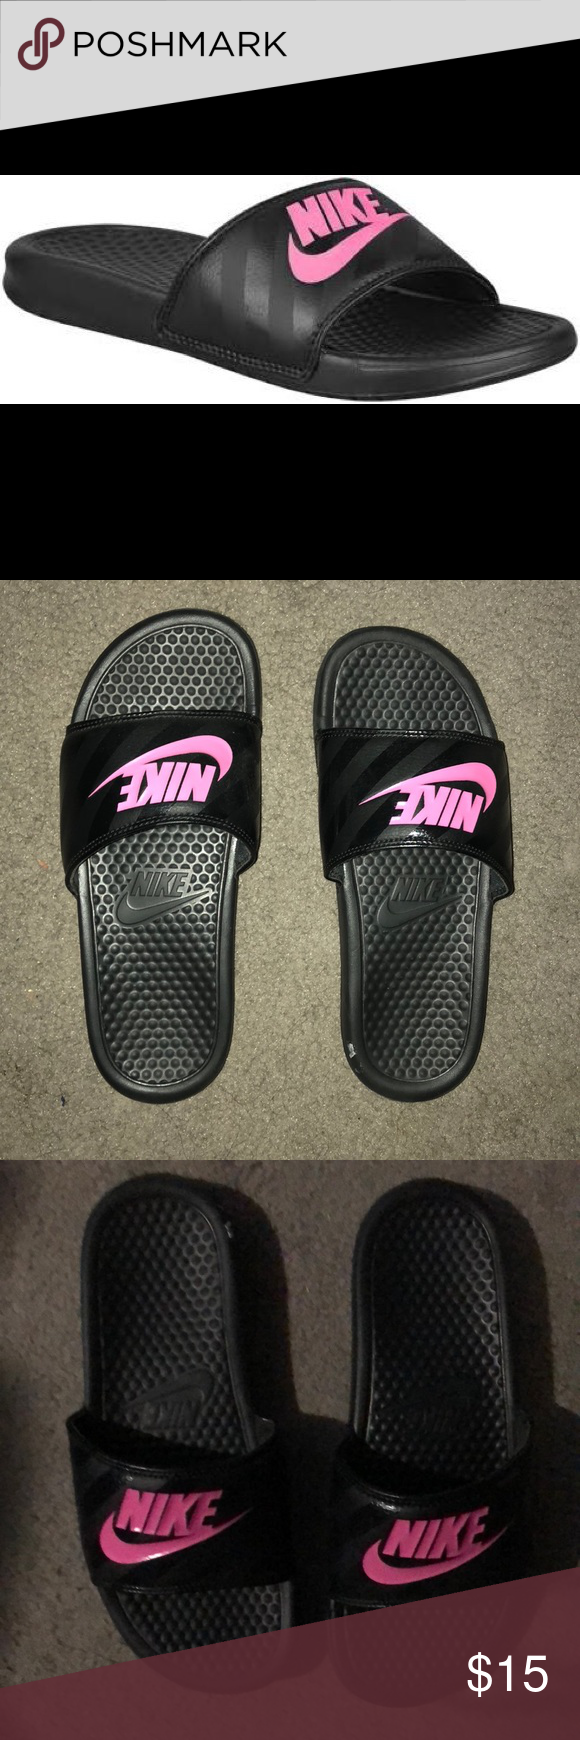 1d88378b6b5e Nike™ Black and Pink Slides Purchased from Modells gently worn!!! Shoes  Slippers